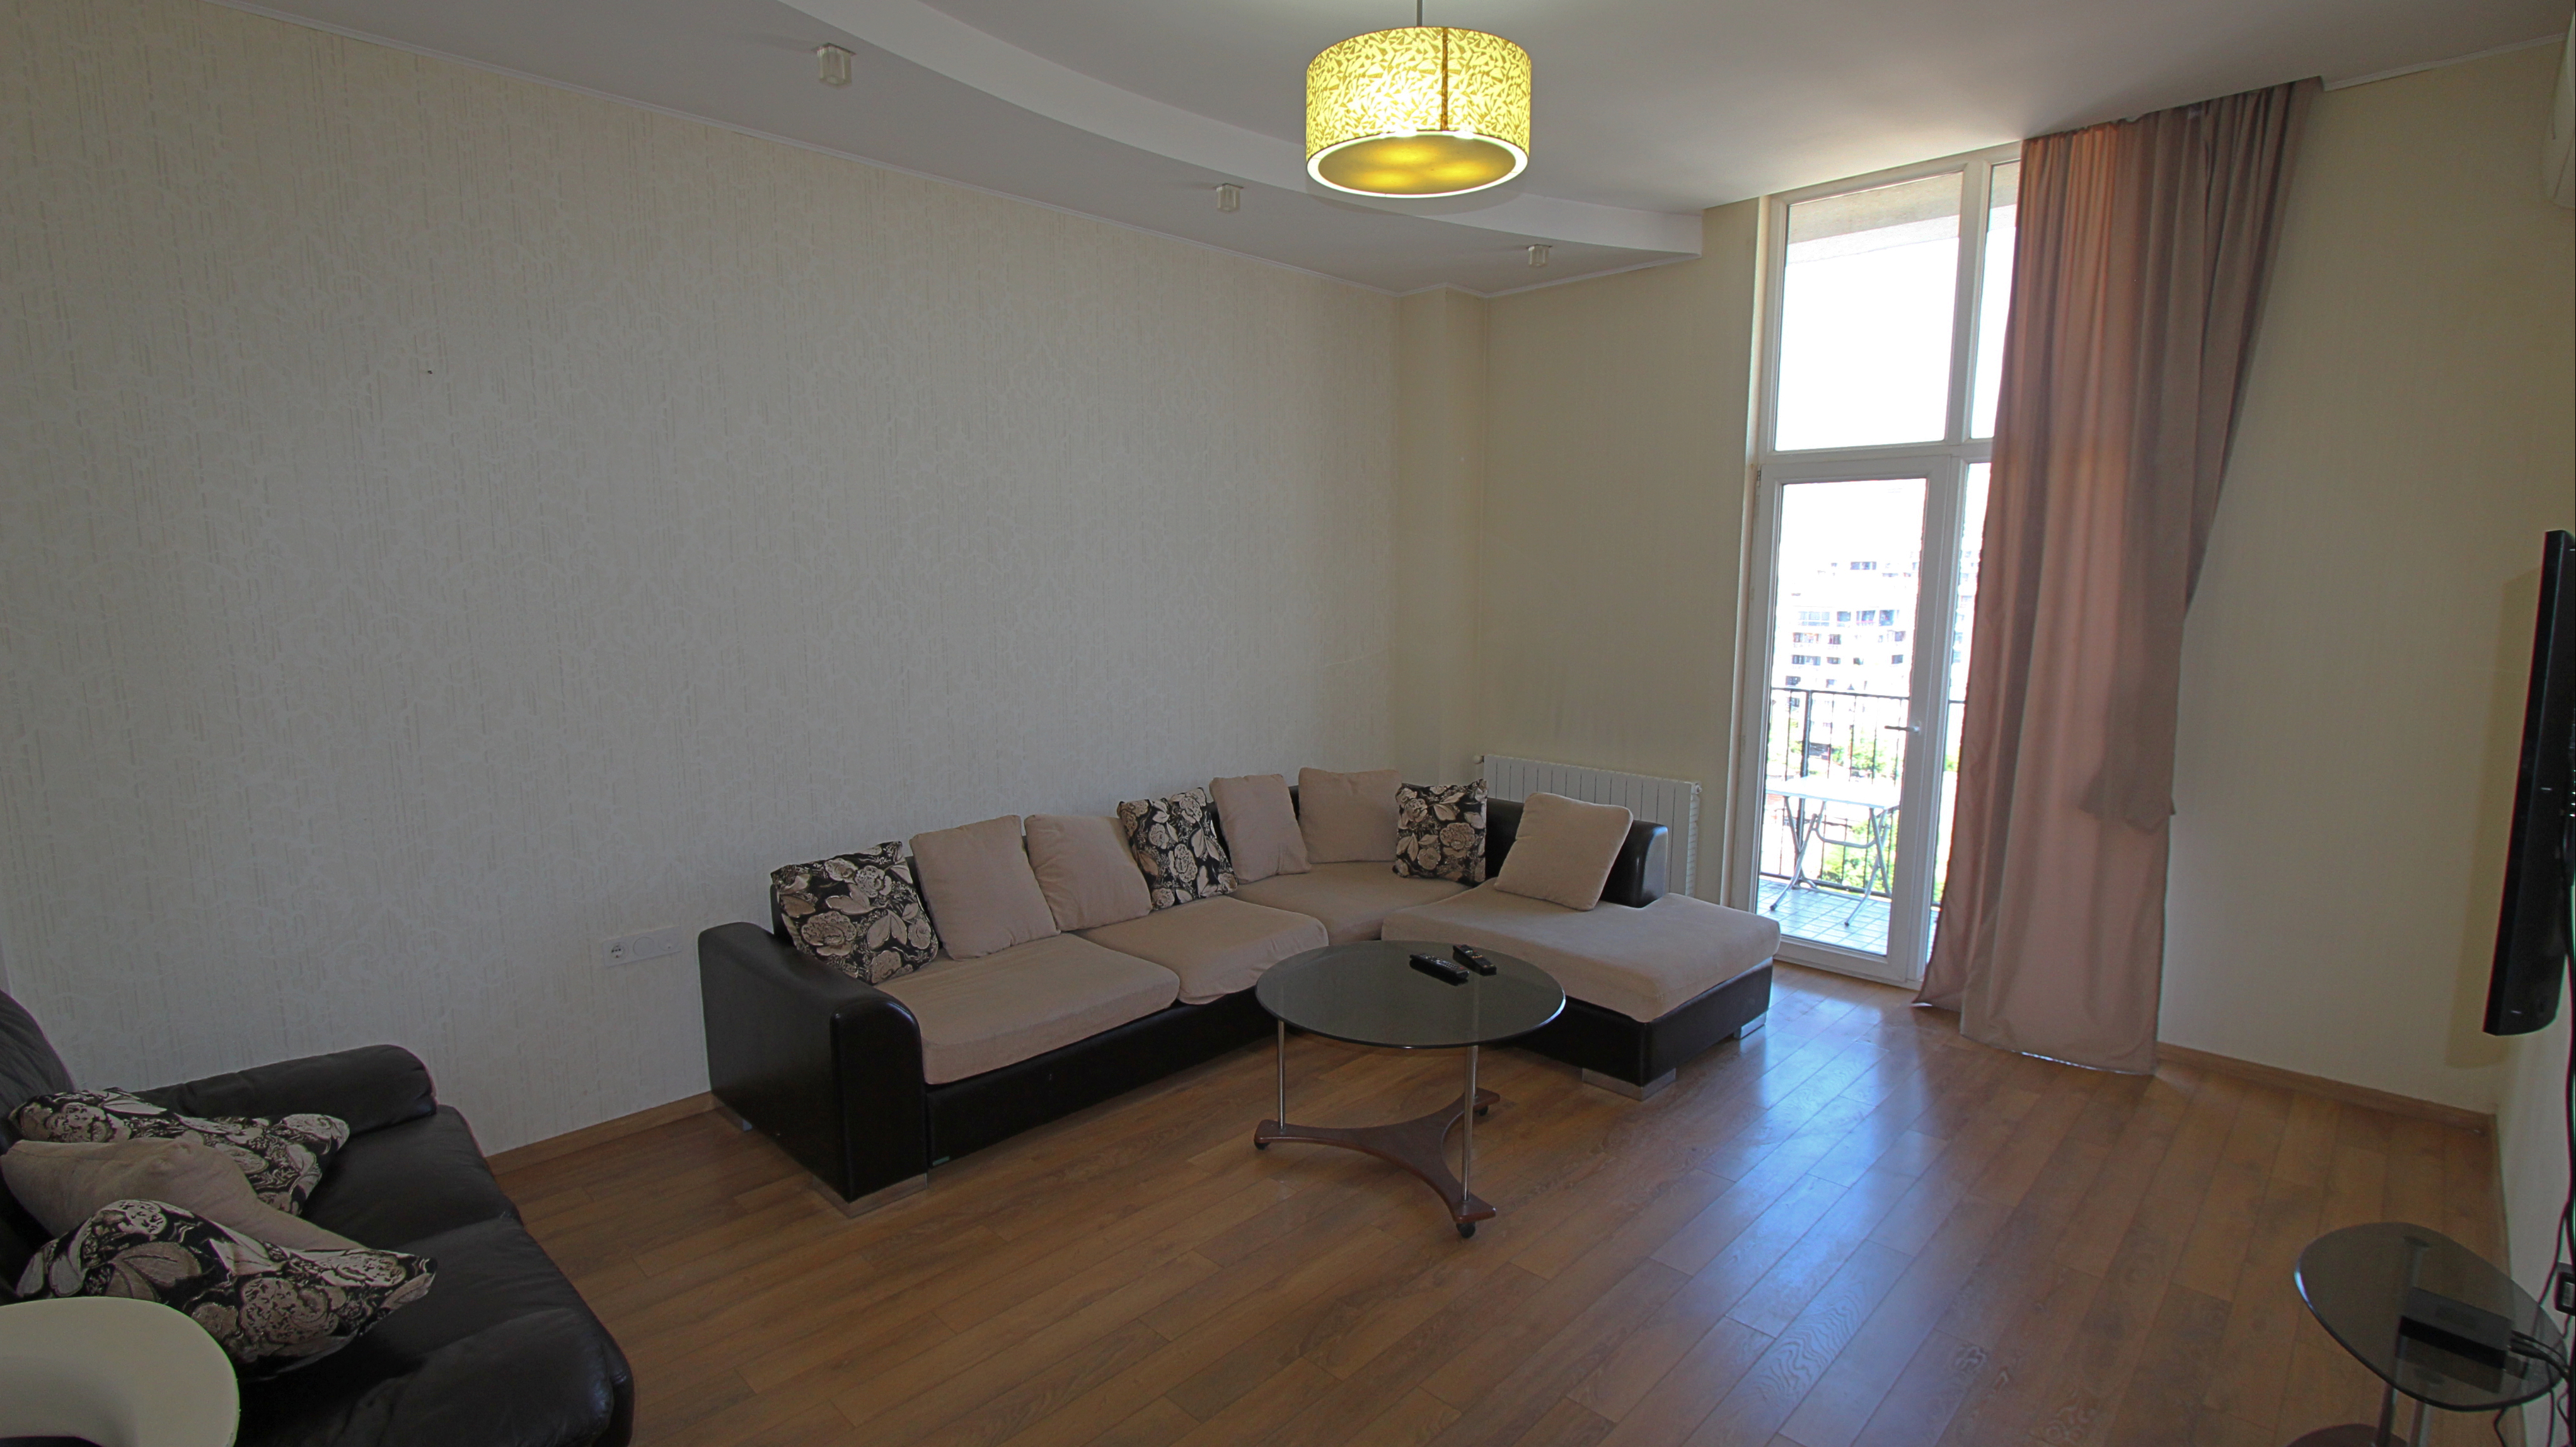 """3-Room Apartment For Rent on Tsintsadze Street, at """"Axis Palace 2"""""""